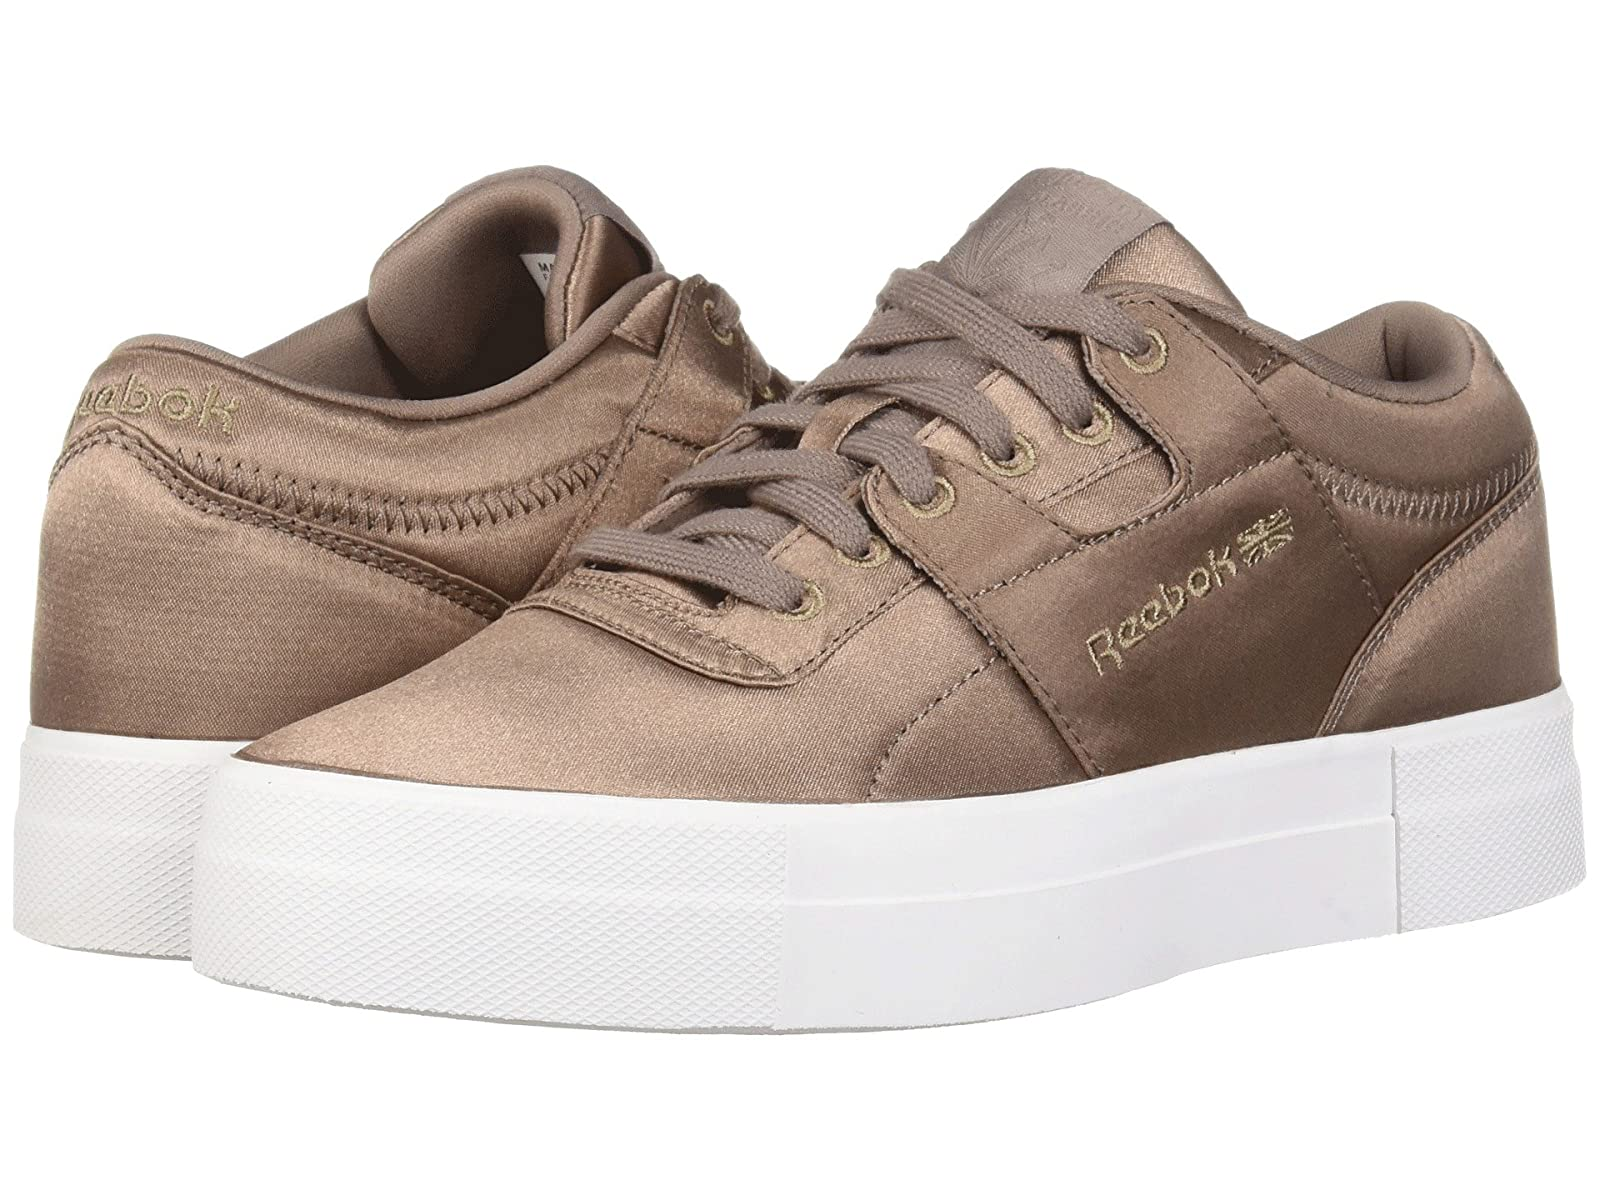 Reebok Lifestyle Workout Lo FVS TXTAtmospheric grades have affordable shoes